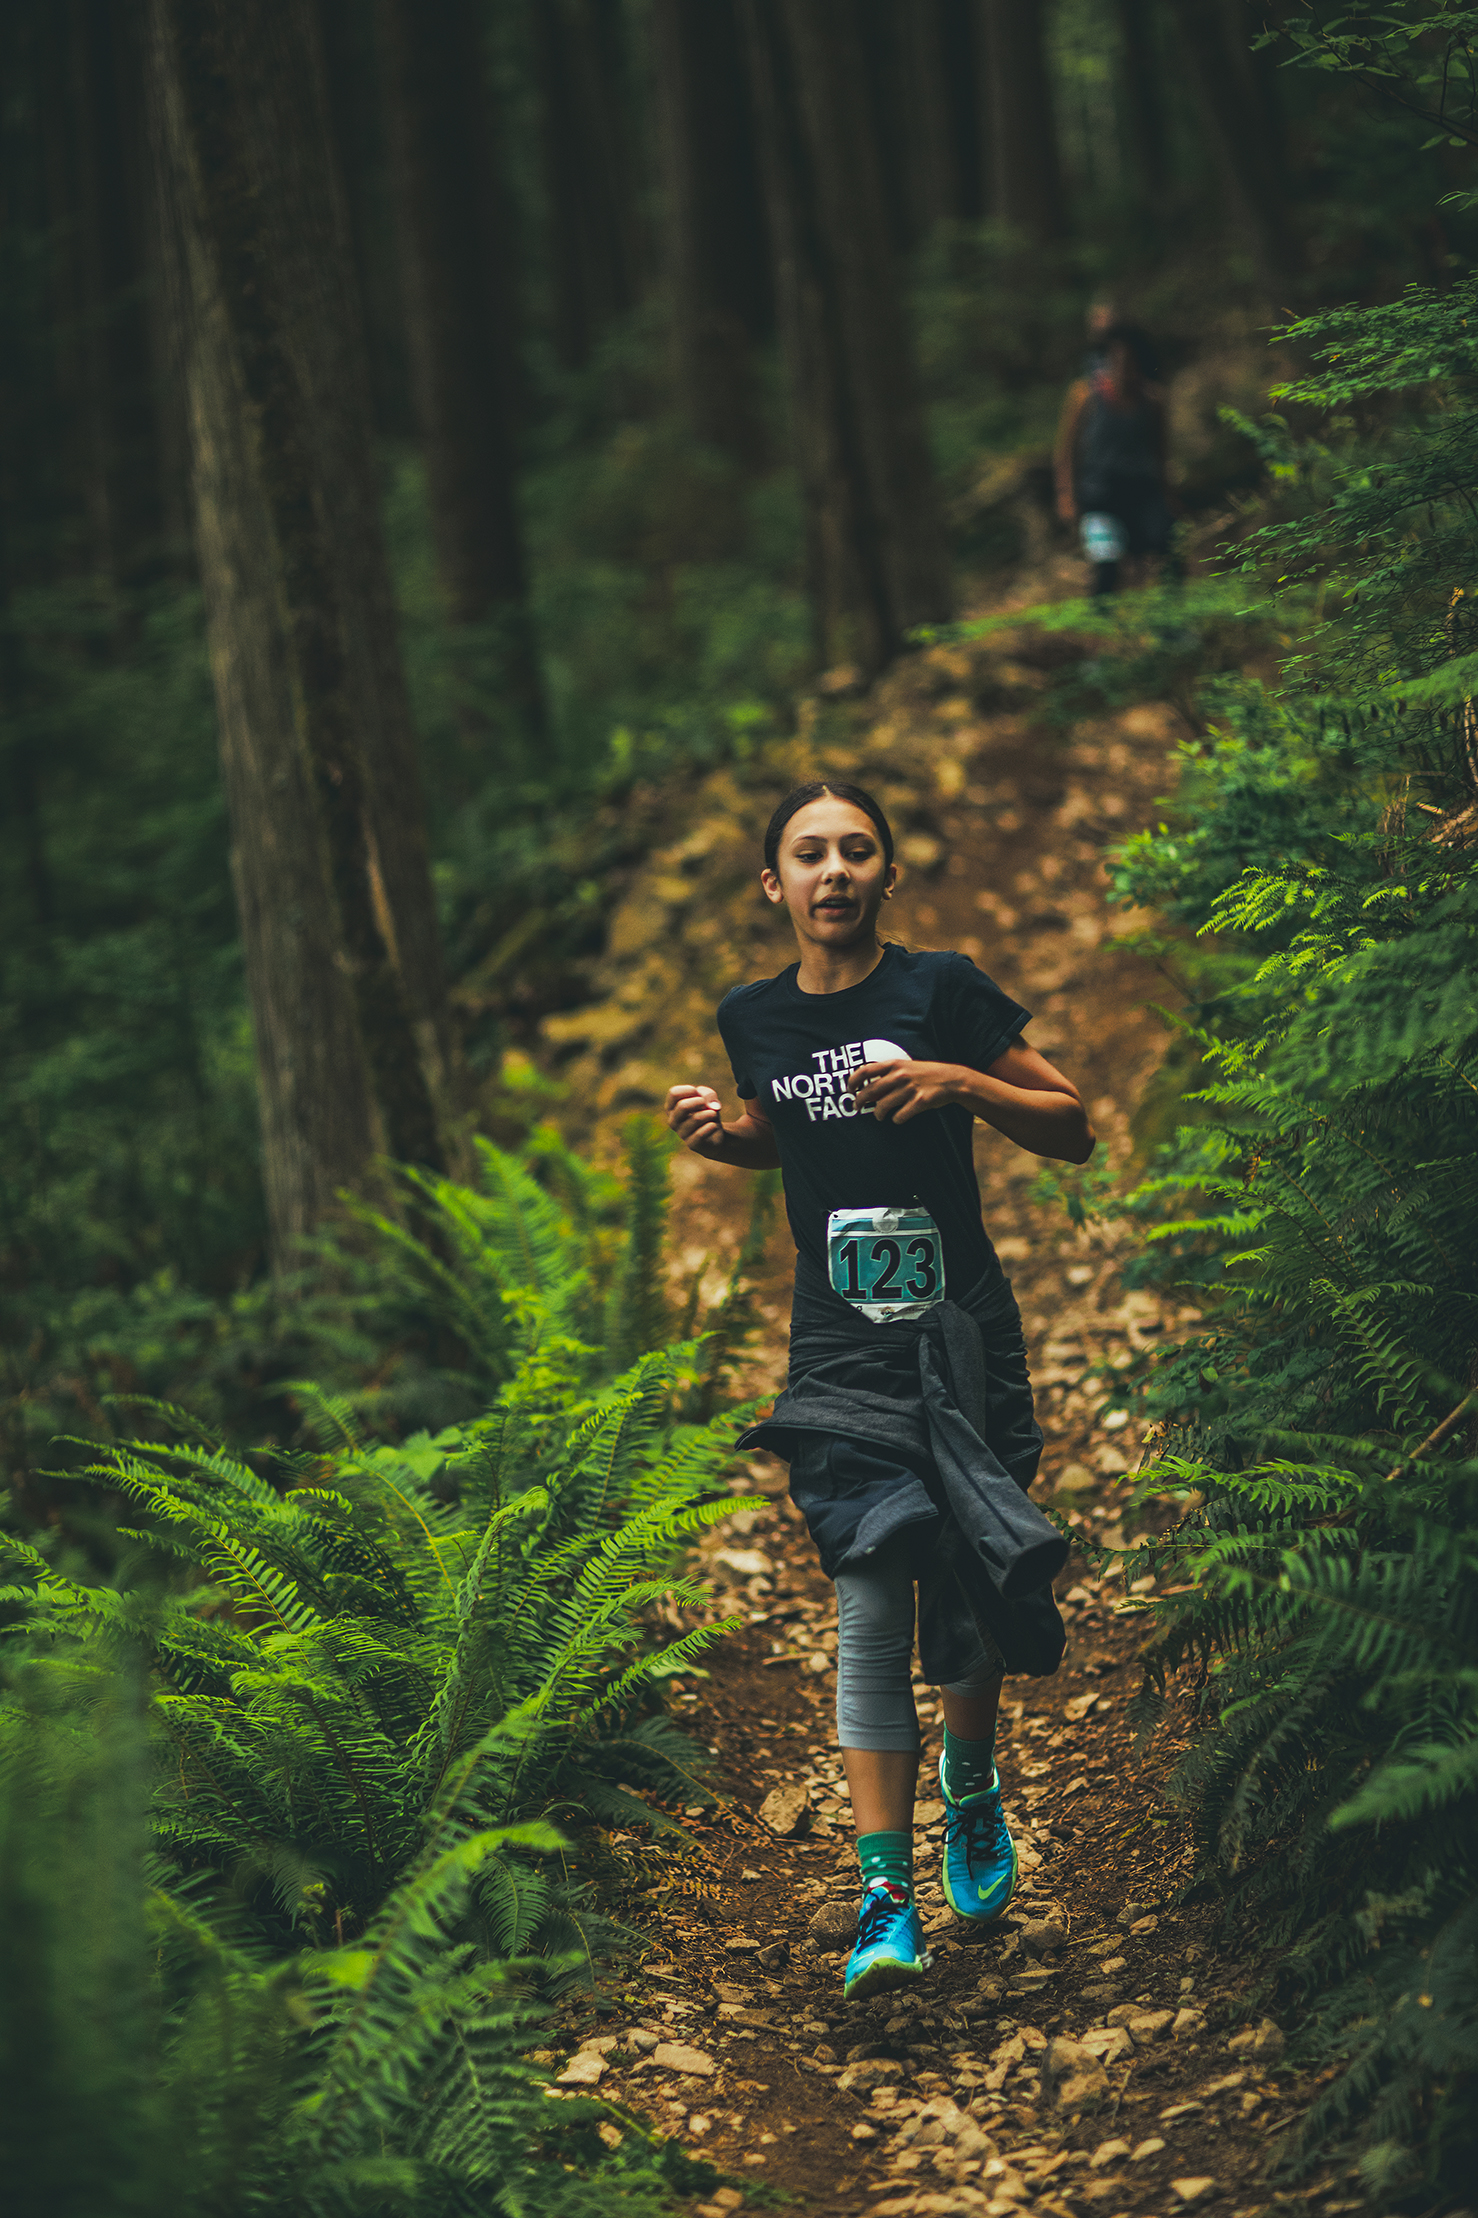 Fraser Valley Trail Races - Bear Mountain - IMG_2045 by Brice Ferre Studio - Vancouver Portrait Adventure and Athlete Photographer.jpg